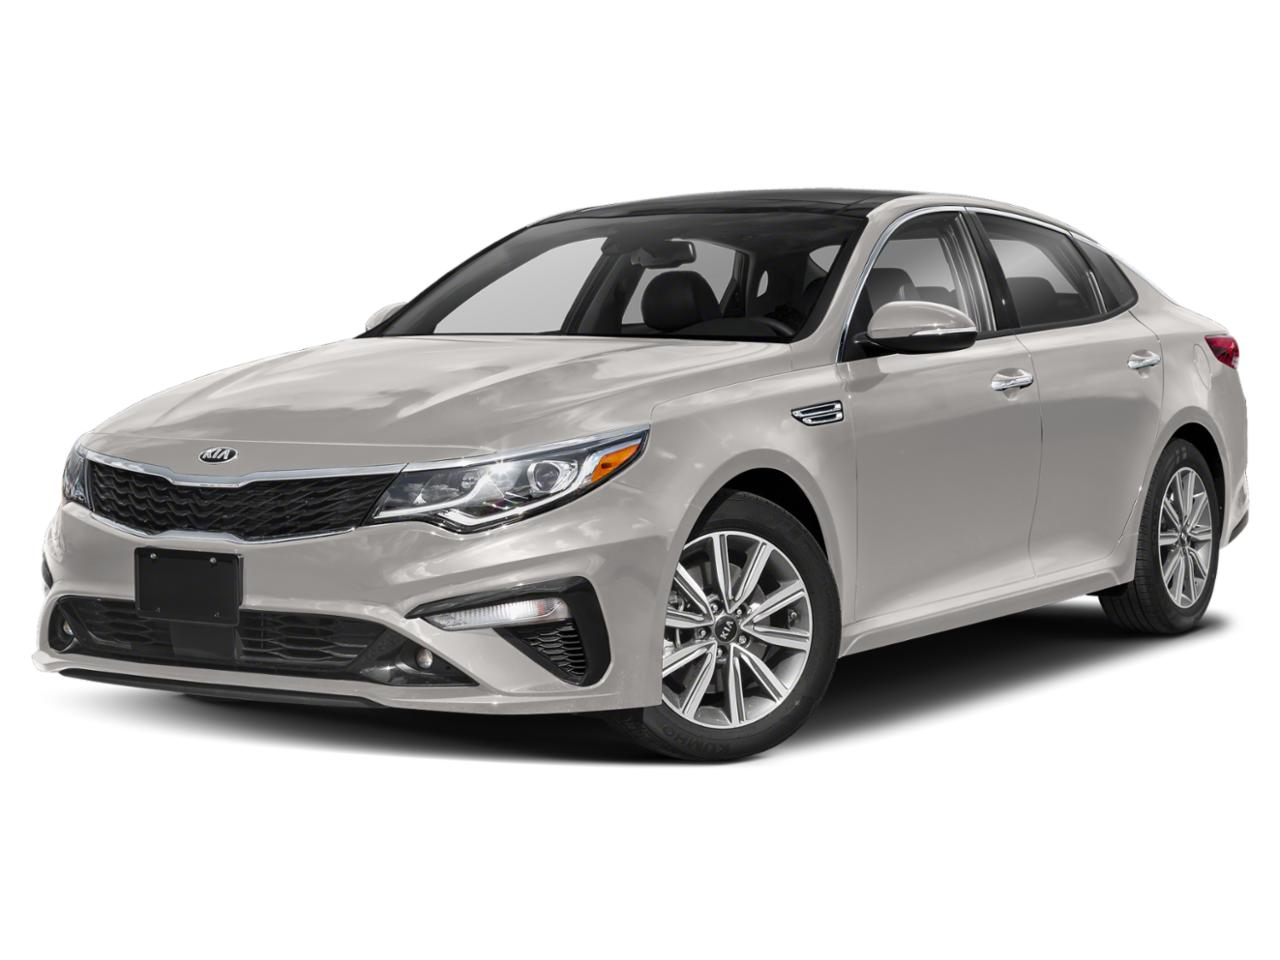 2020 Kia Optima Vehicle Photo in Peoria, IL 61615